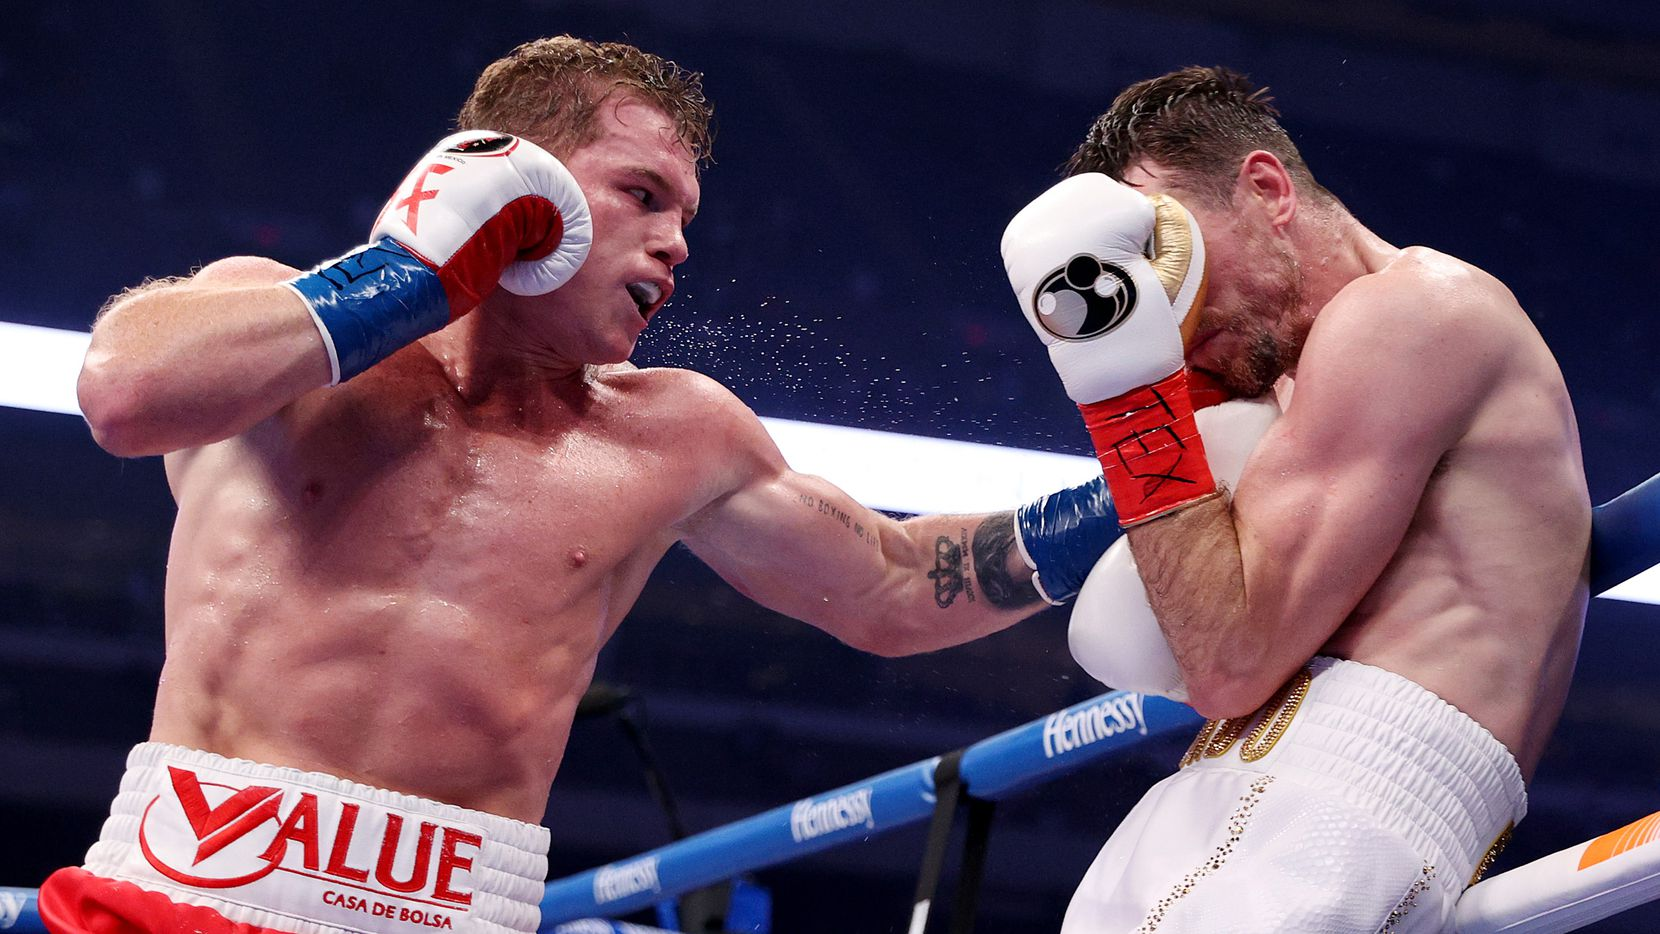 In this handout image provided by Matchroom, Canelo Alvarez punches Callum Smith during their super middleweight title bout at the Alamodome on December 19, 2020 in San Antonio, Texas.